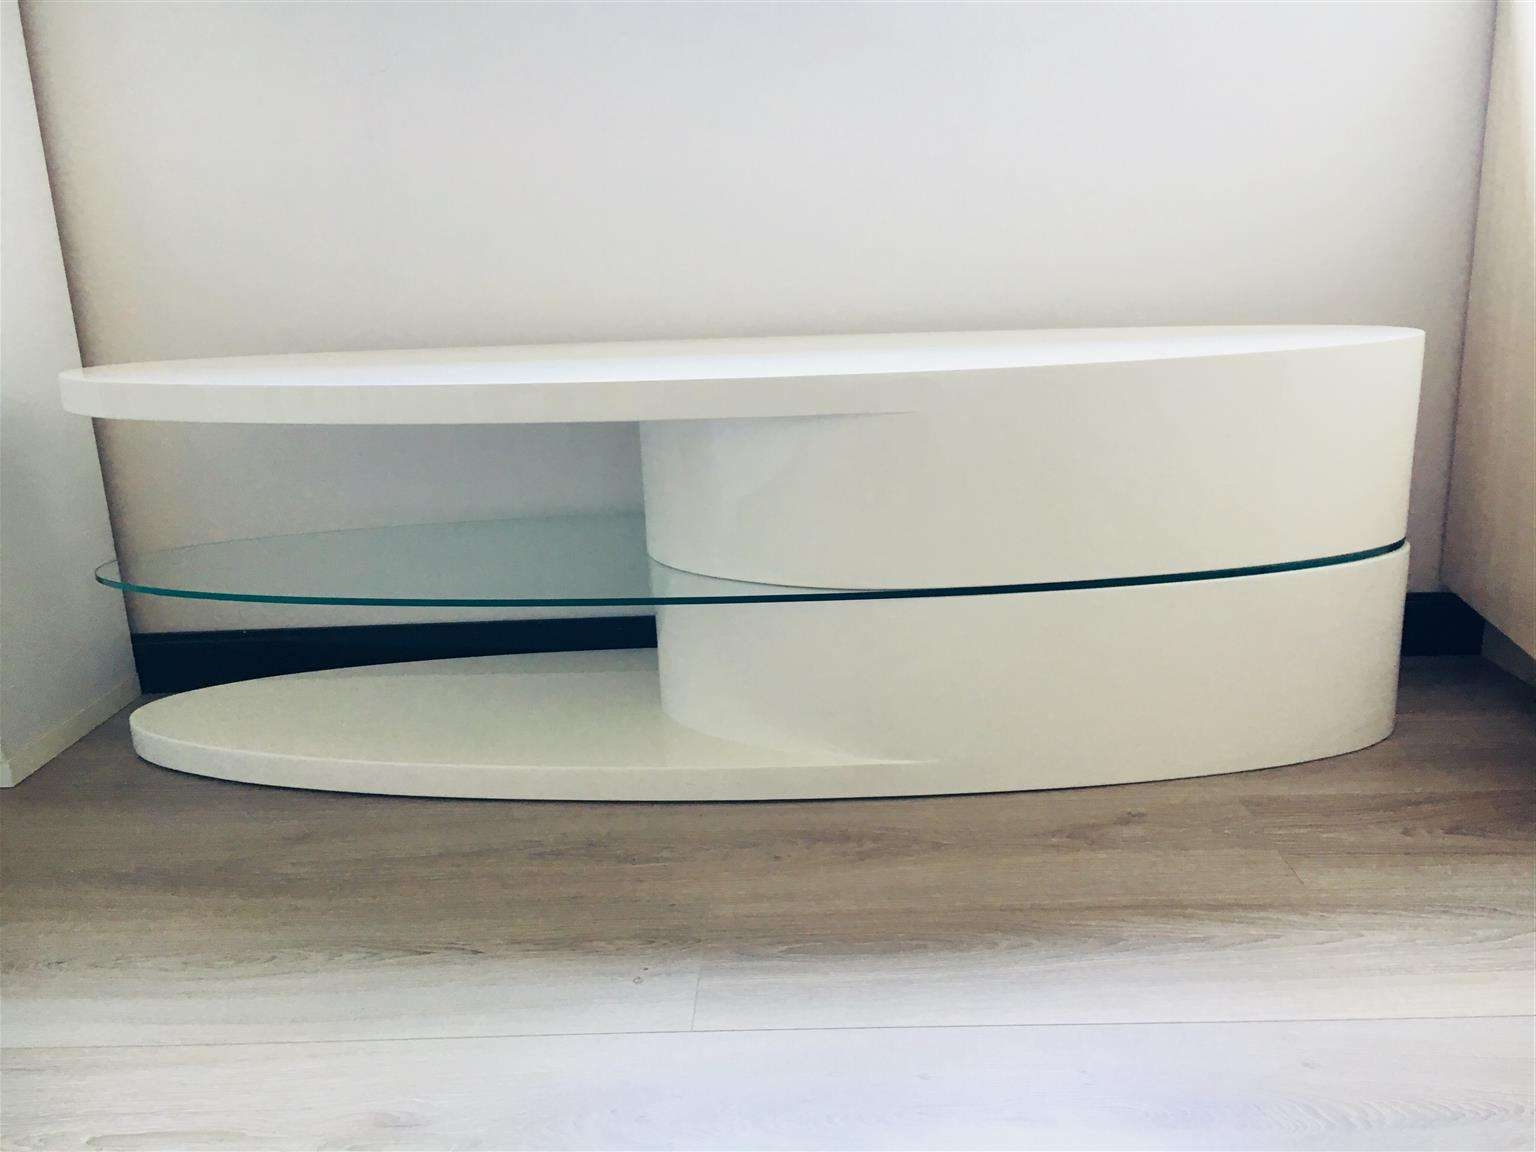 High Gloss White Tv Stand | Junk Mail Regarding Gloss White Tv Stands (View 7 of 15)